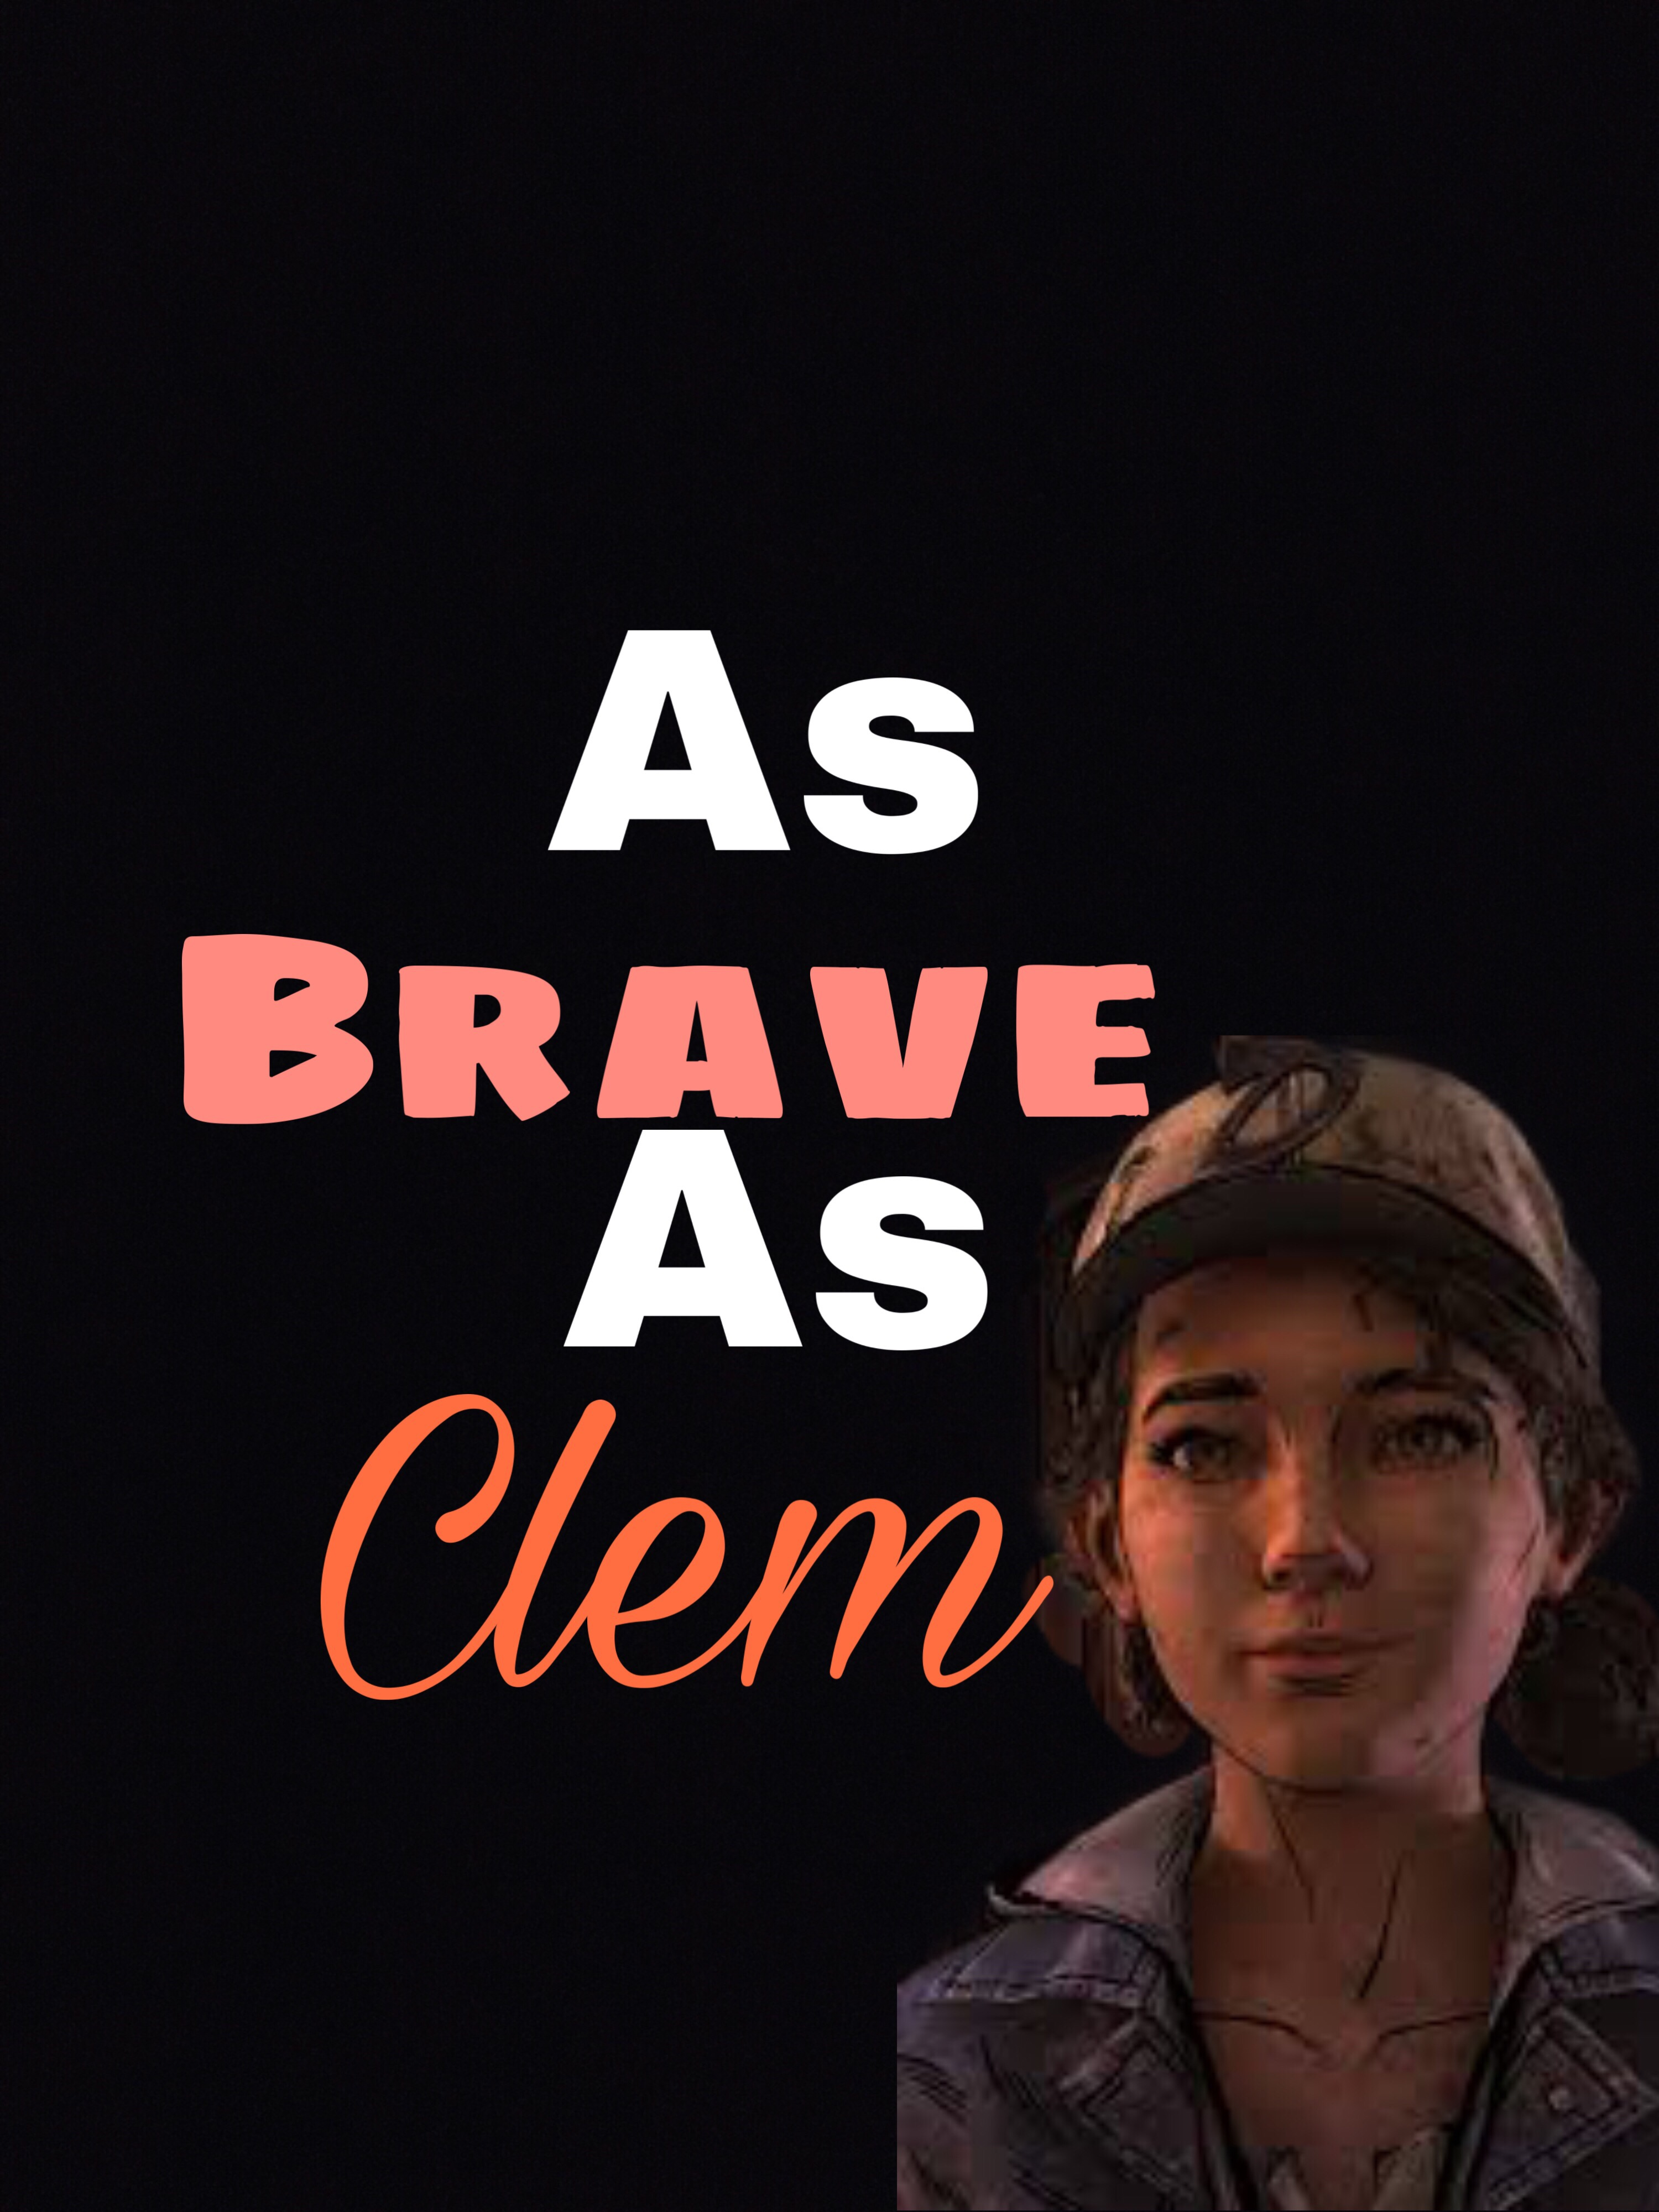 Twdg Clementine Clem I Made Another Wallpaper And There